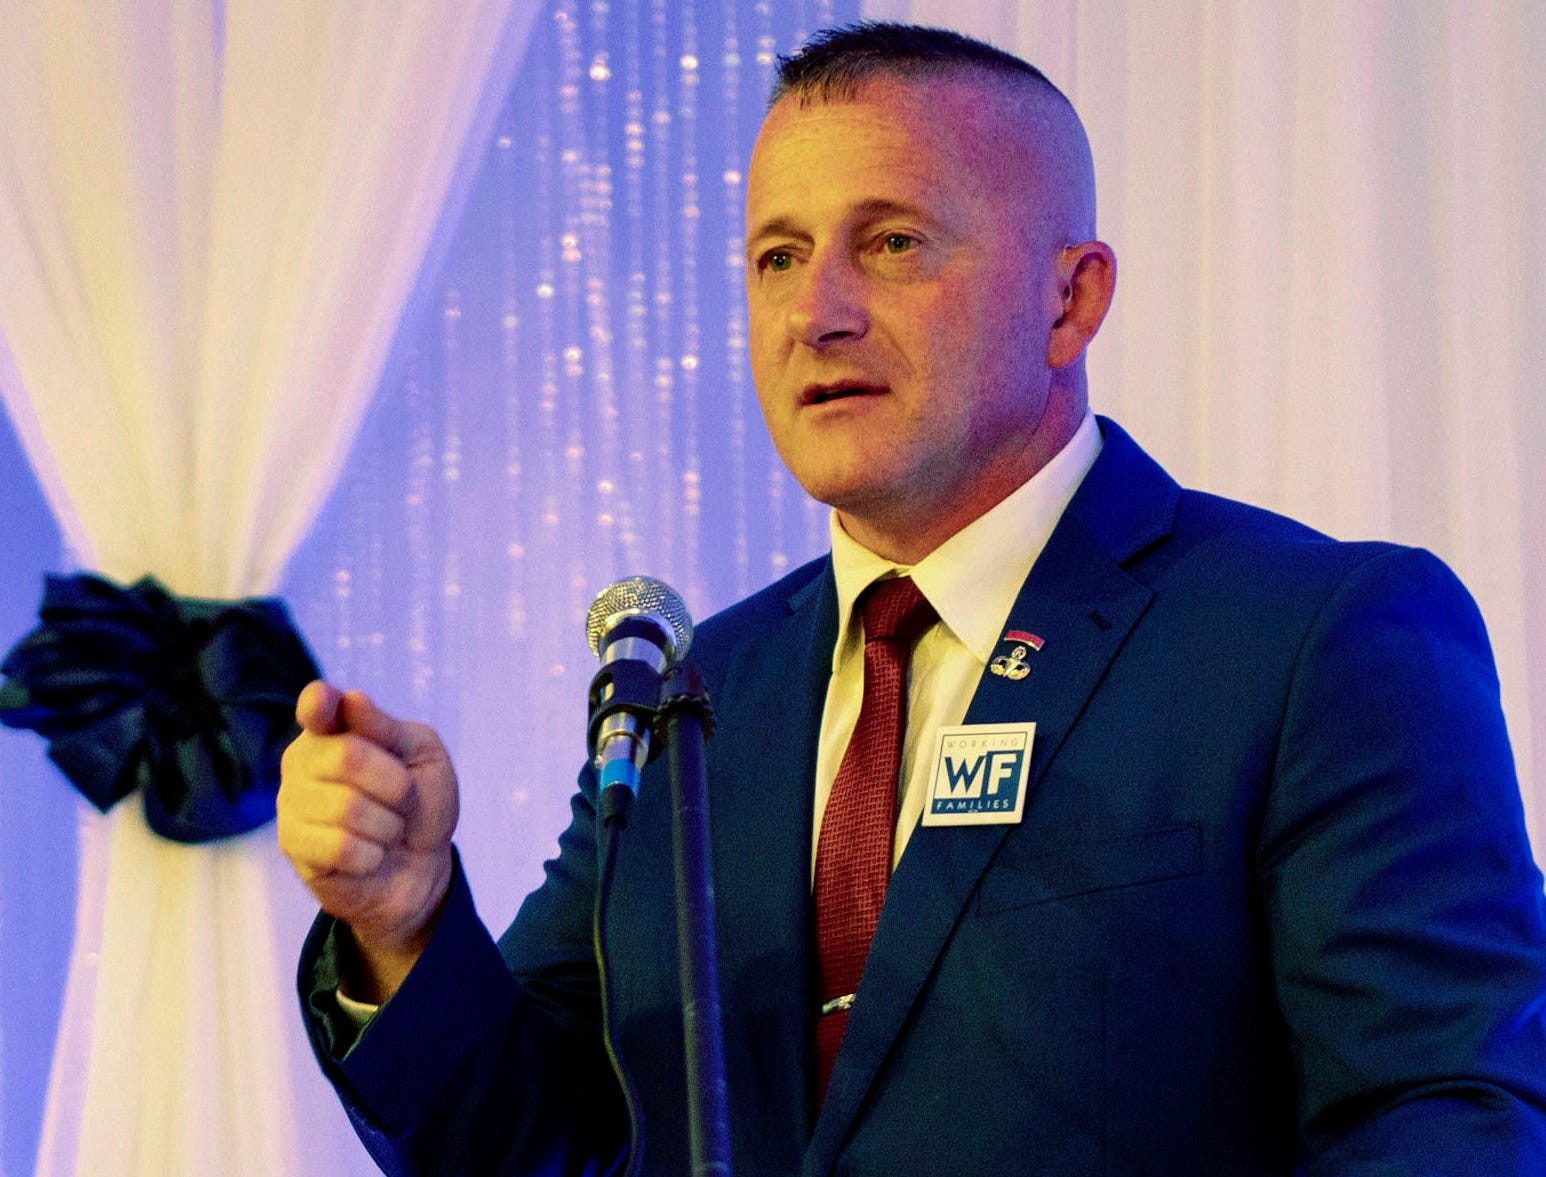 Richard Ojeda, the Democratic candidate who lost his bid for West Virginia's 3rd Congressional district, has declared he is running for president in 2020.